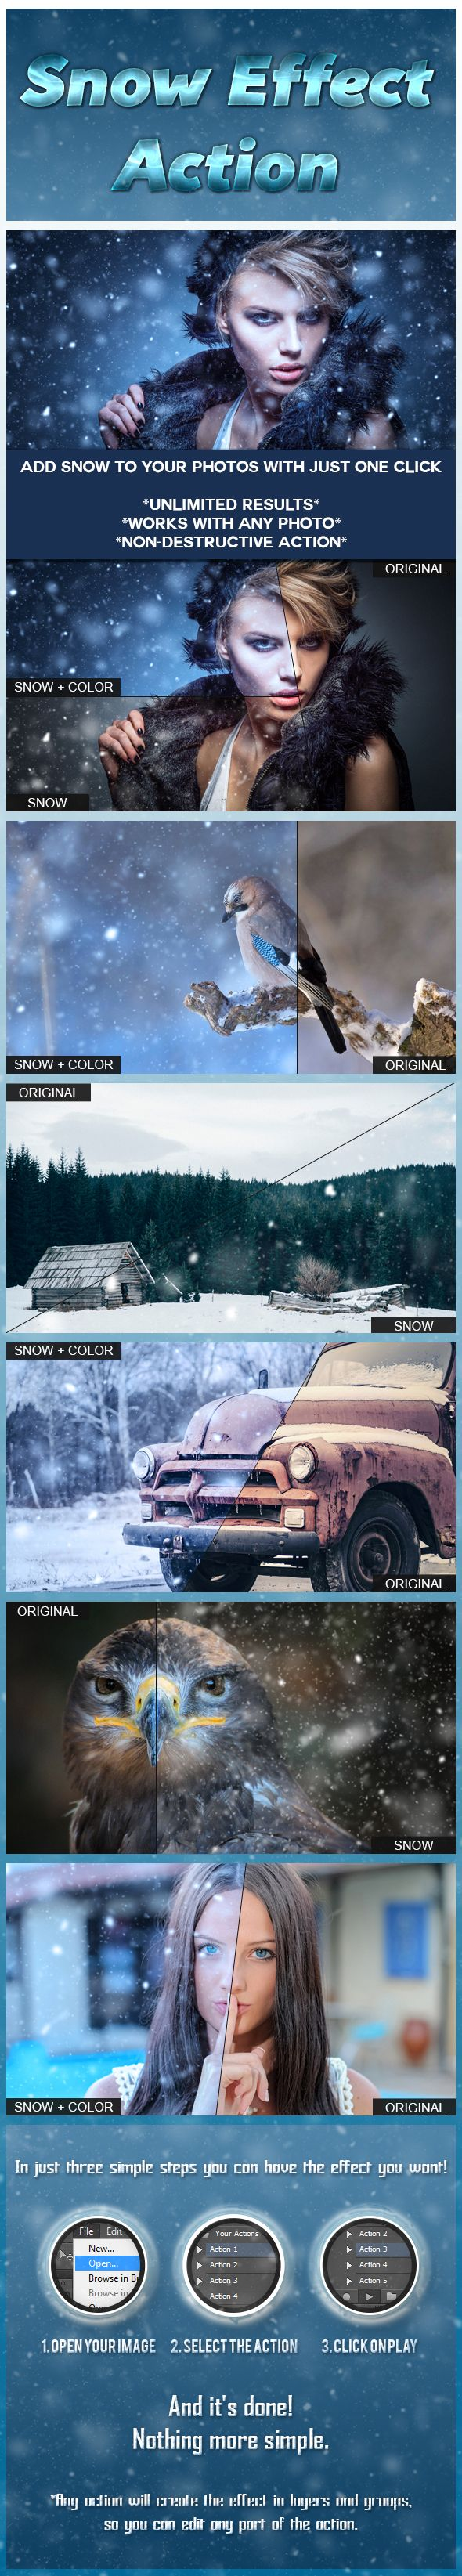 Snow Effect Action - Photo Effects Actions                                                                                                                                                                                 More